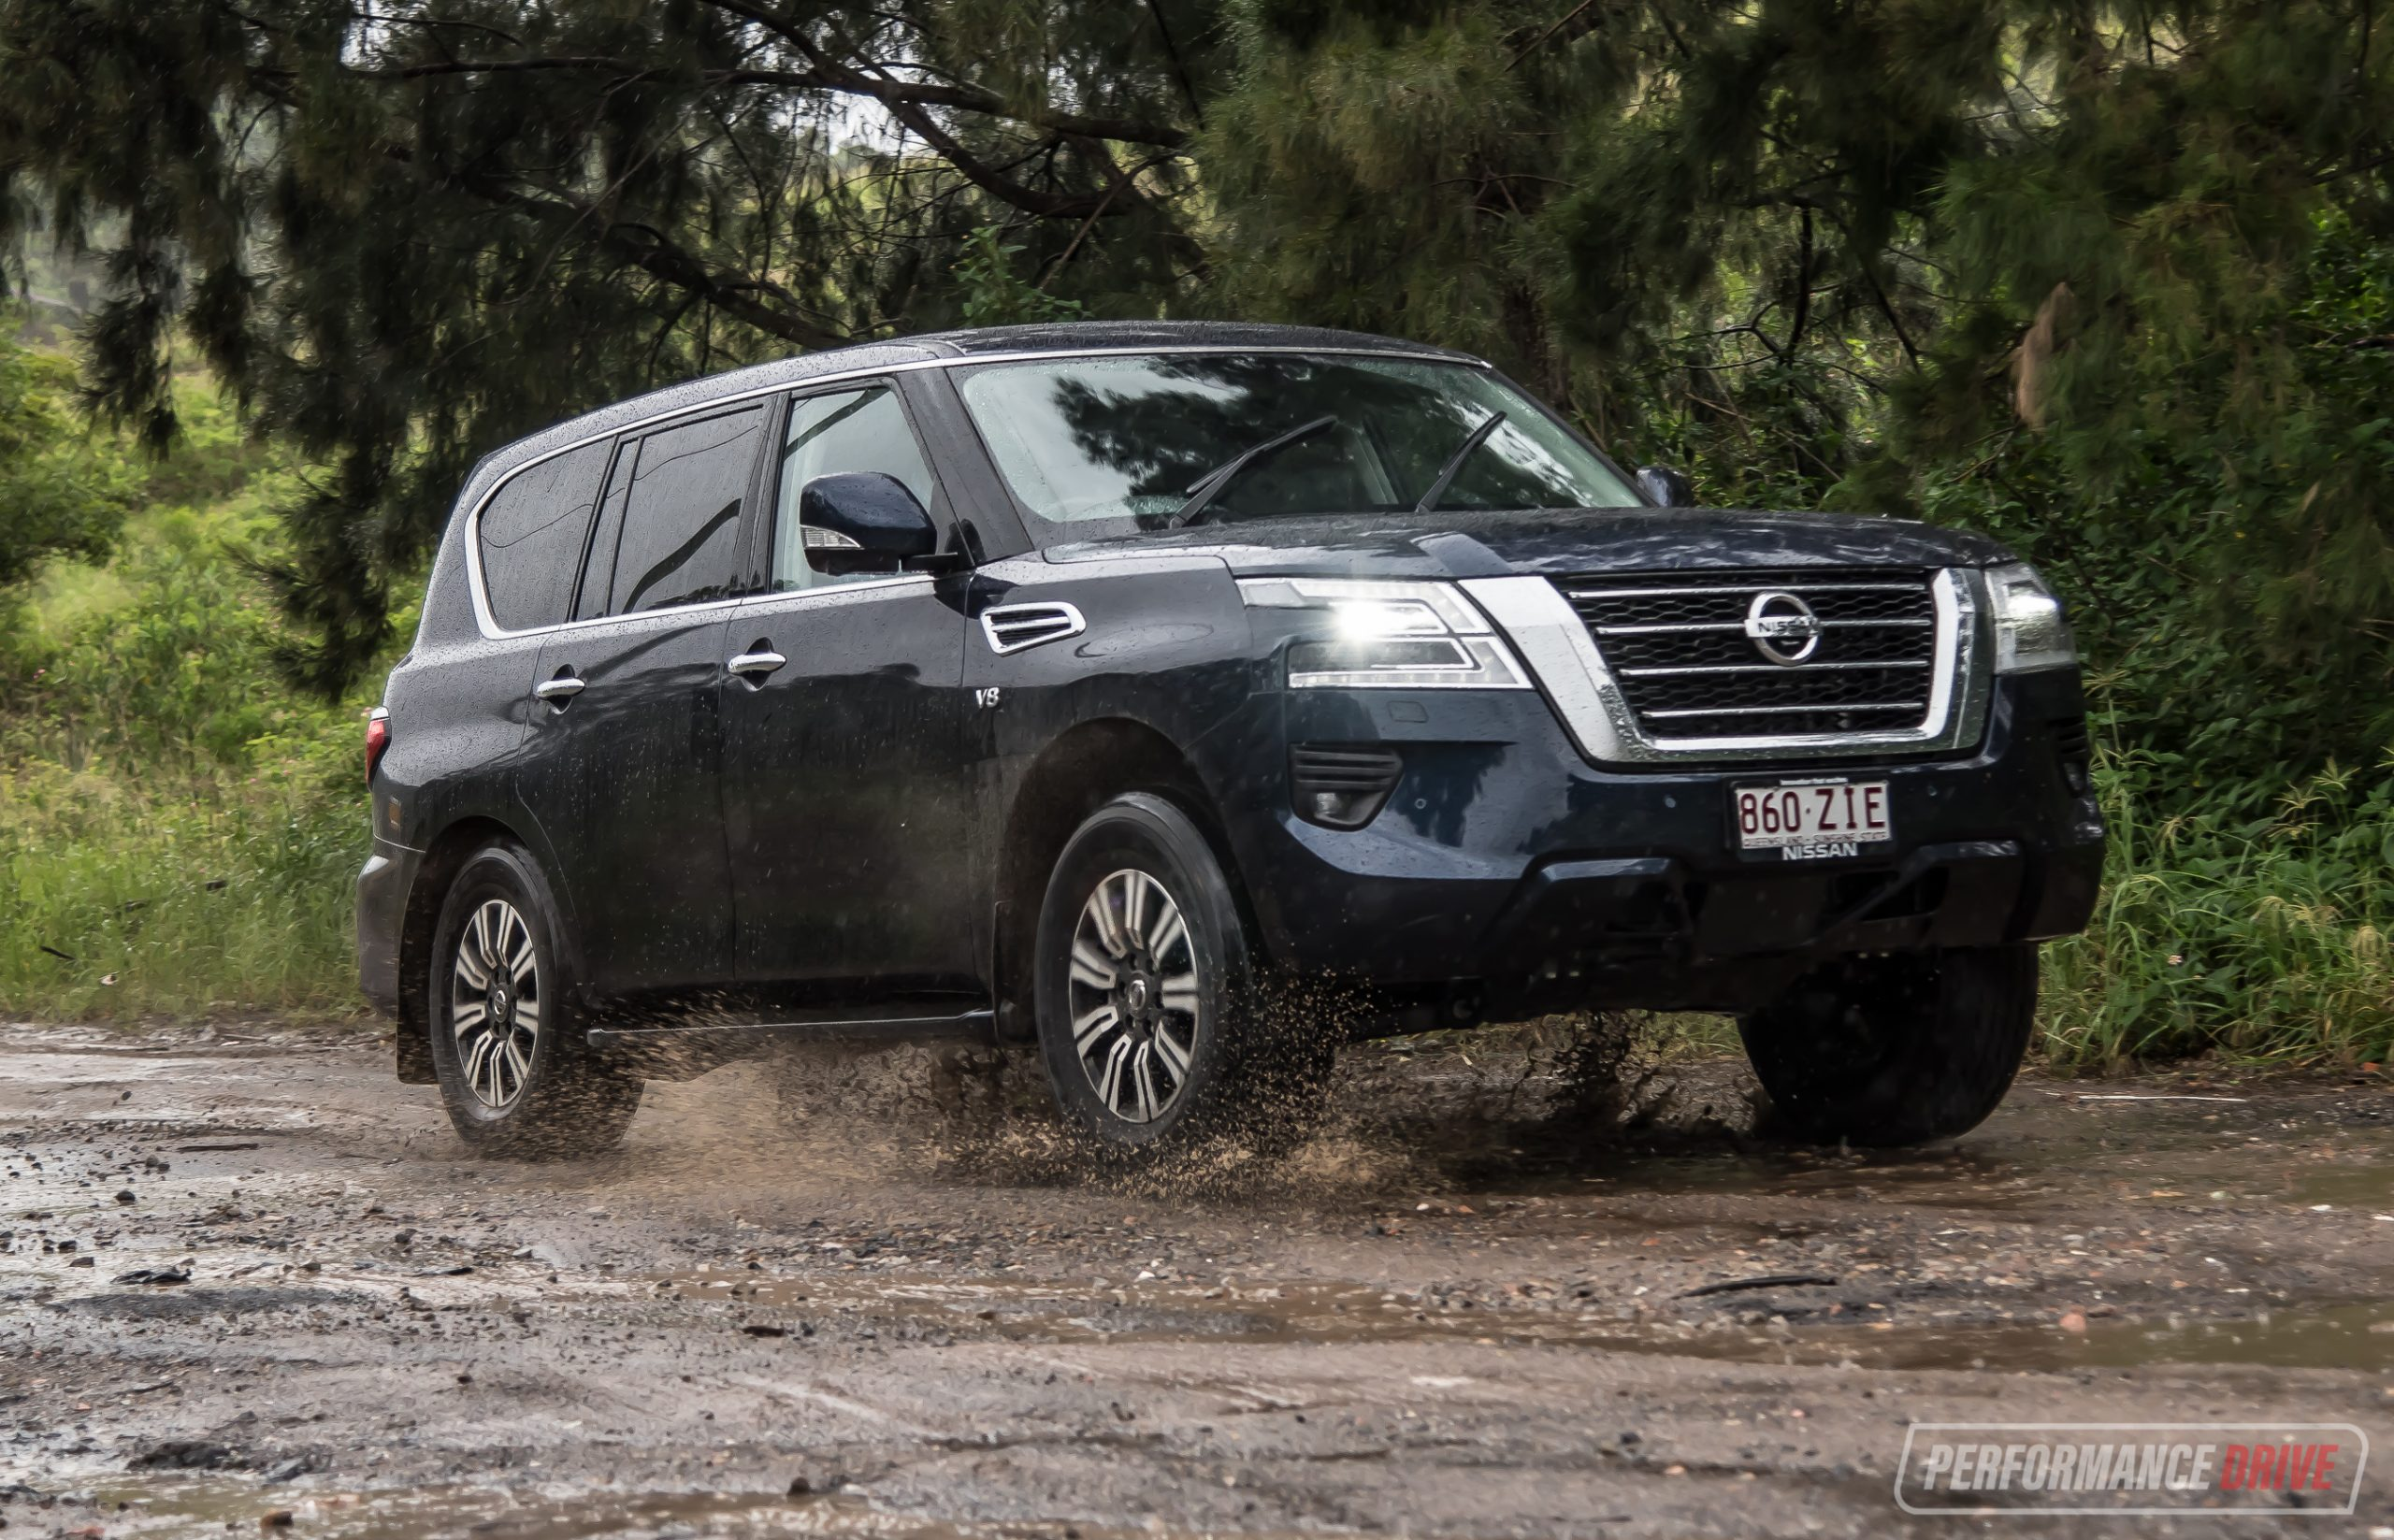 2020 nissan patrol ti review (video) - performancedrive